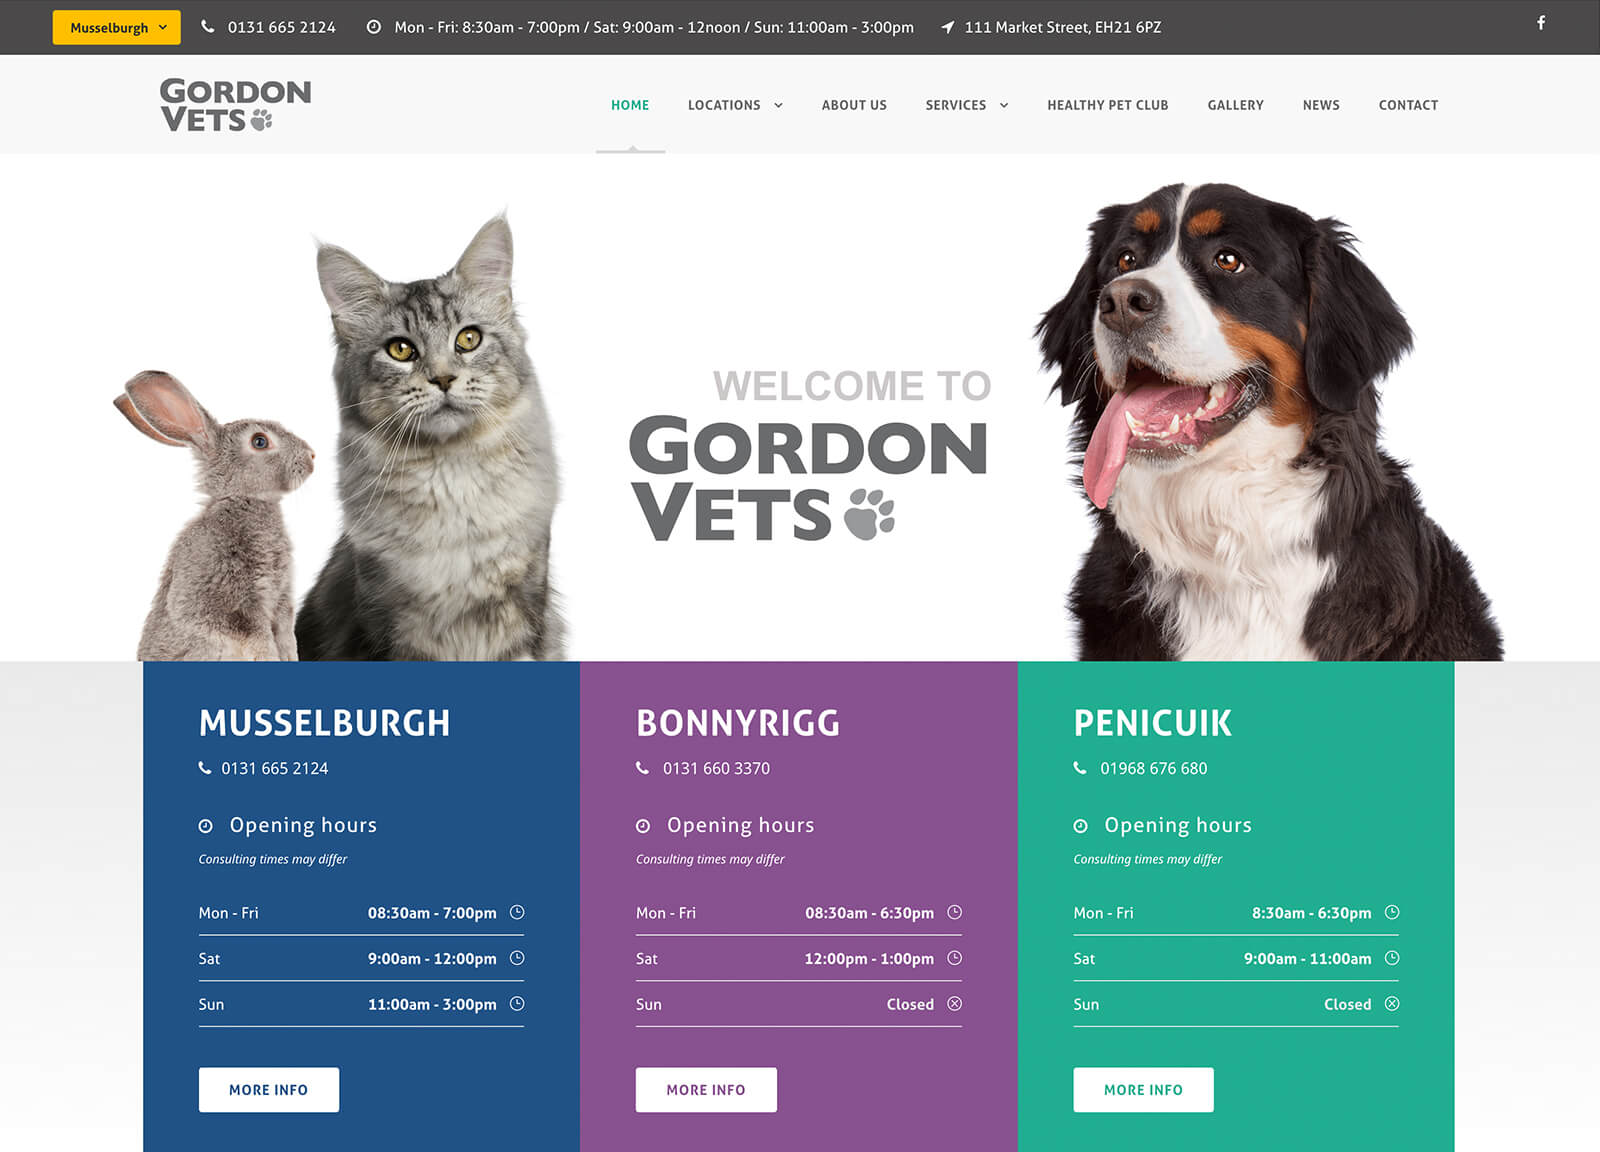 Home page - Gordon Vets website design